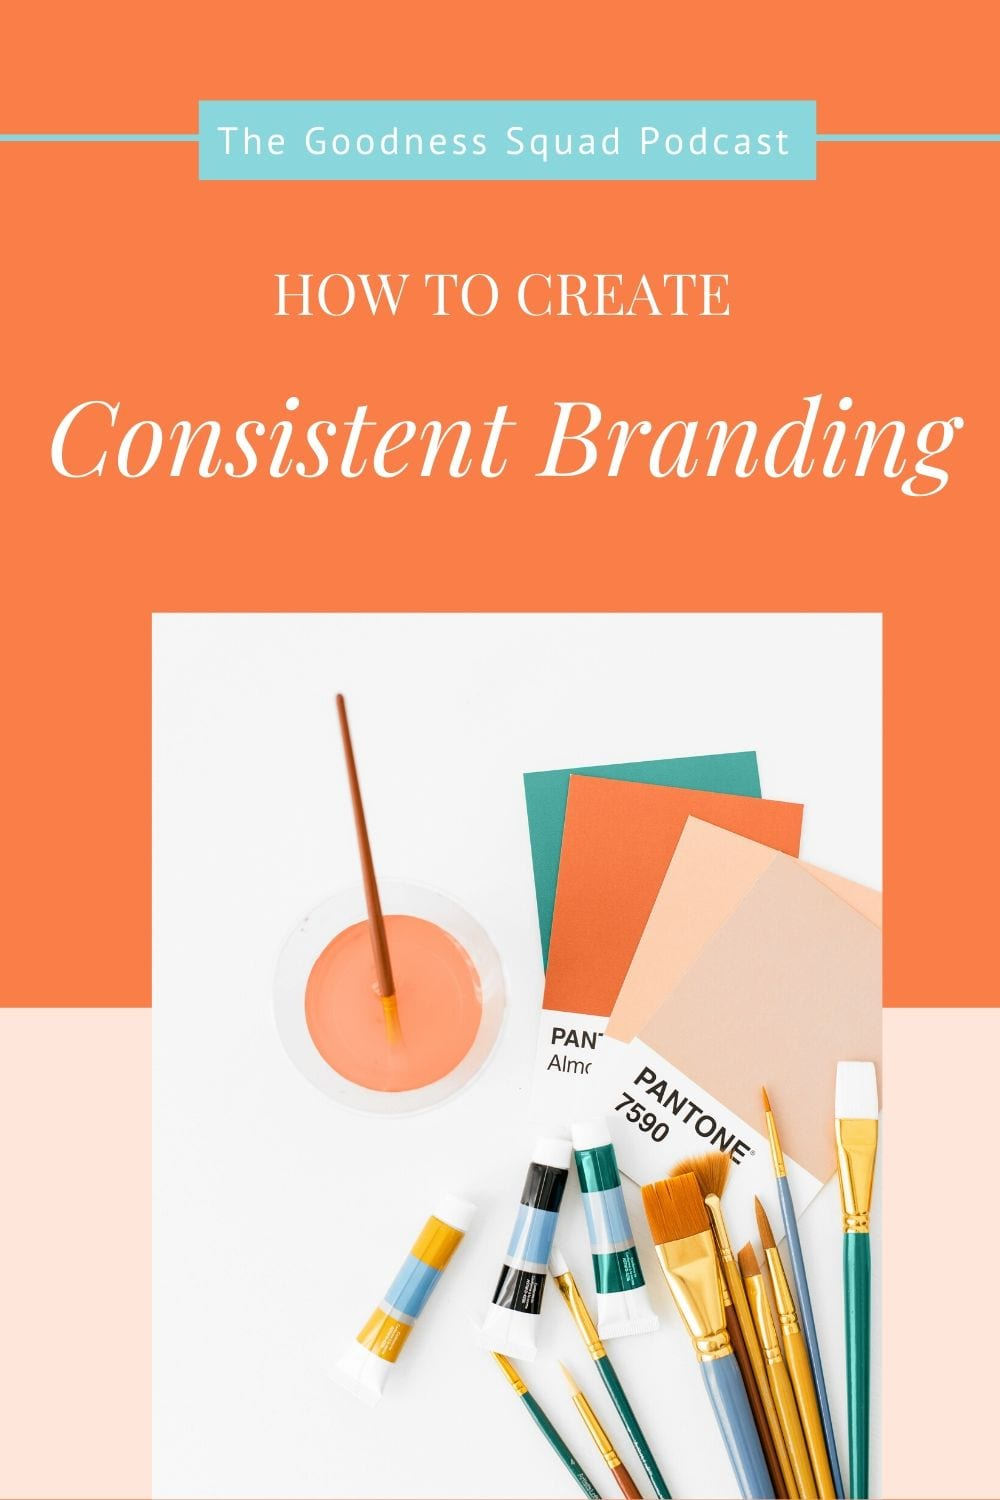 How inconsistent branding (aka an identity crisis) can hinder business growth